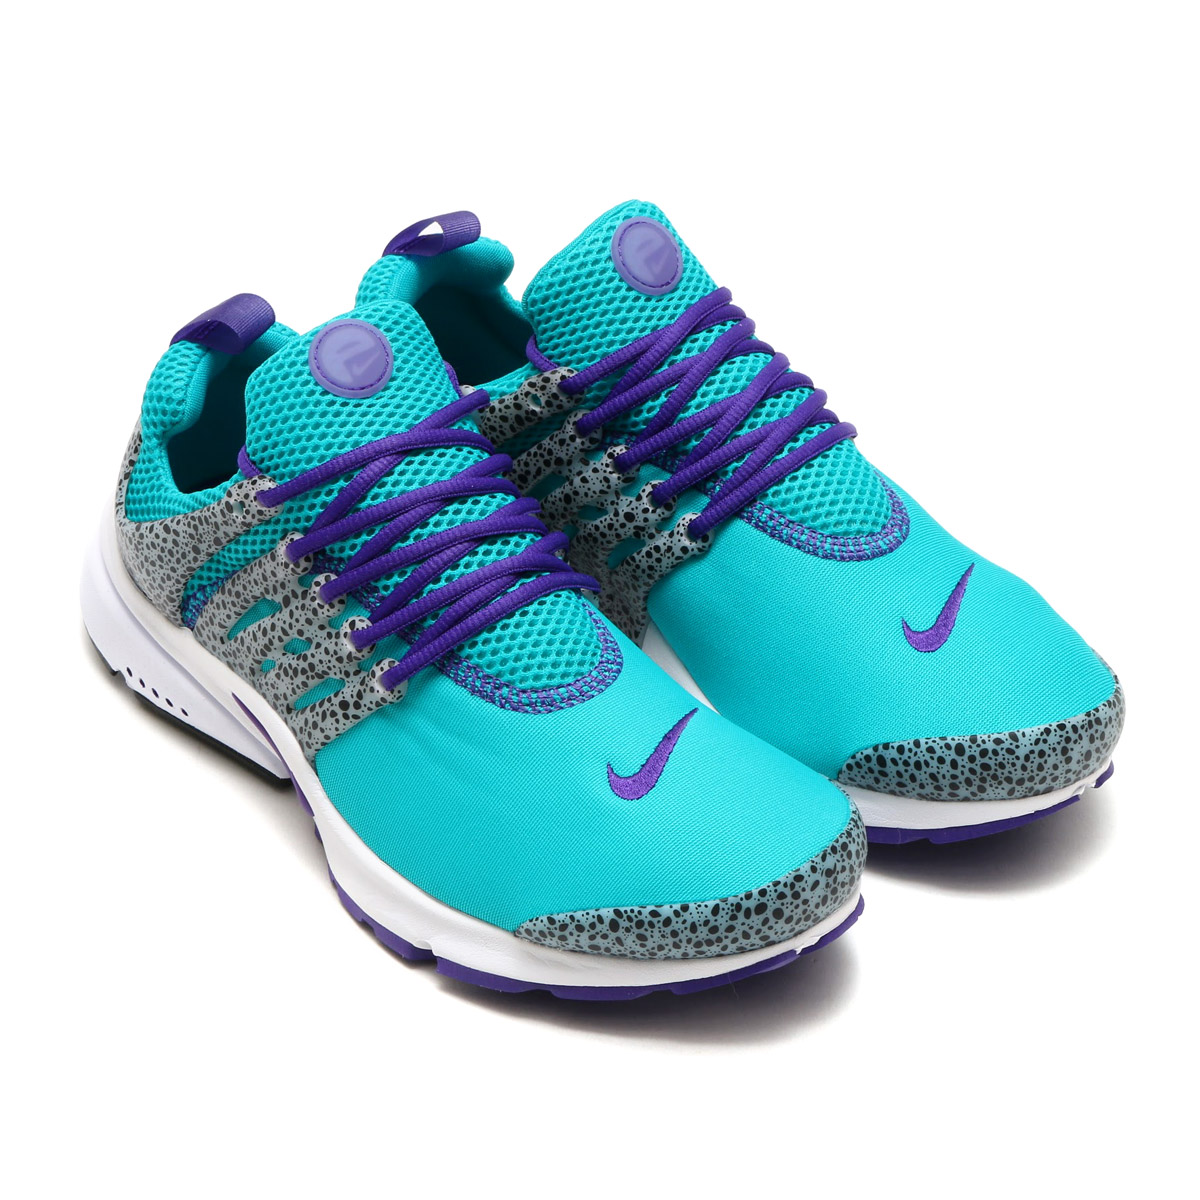 NIKE AIR PRESTO QS(ナイキ エア プレスト QS)(TURBO GREEN/COURT PURPLE-PURE PLATINUM)17SU-S